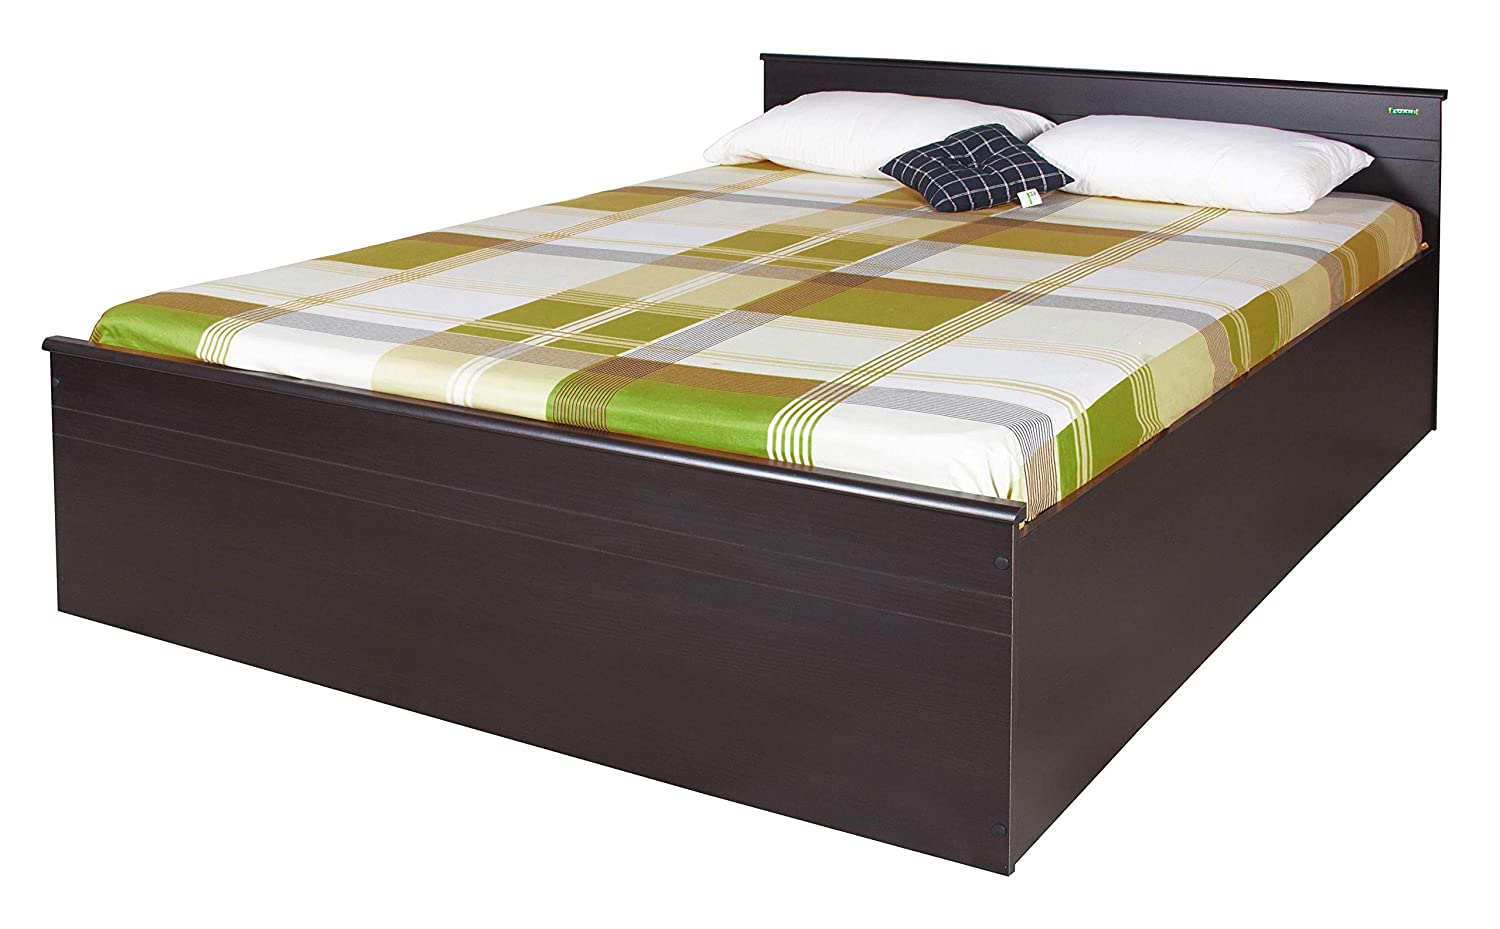 Zuari Timatall King Box Storage Bed (Imperial Teak)